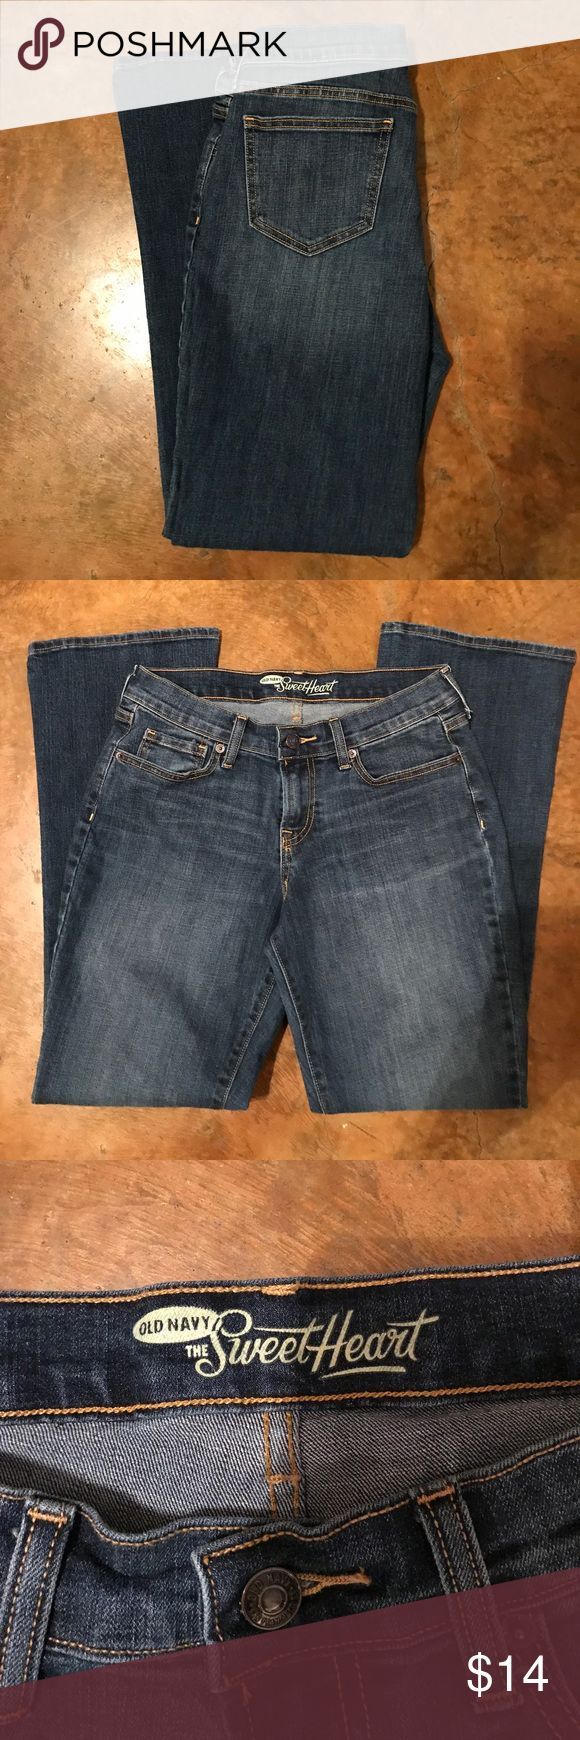 💥SALE💥 Old Navy boot cut Sweetheart jeans 👖 GUC (really closer to EUC) women's Old Navy Sweetheart boot cut jeans. Size 6. Old Navy Jeans Boot Cut